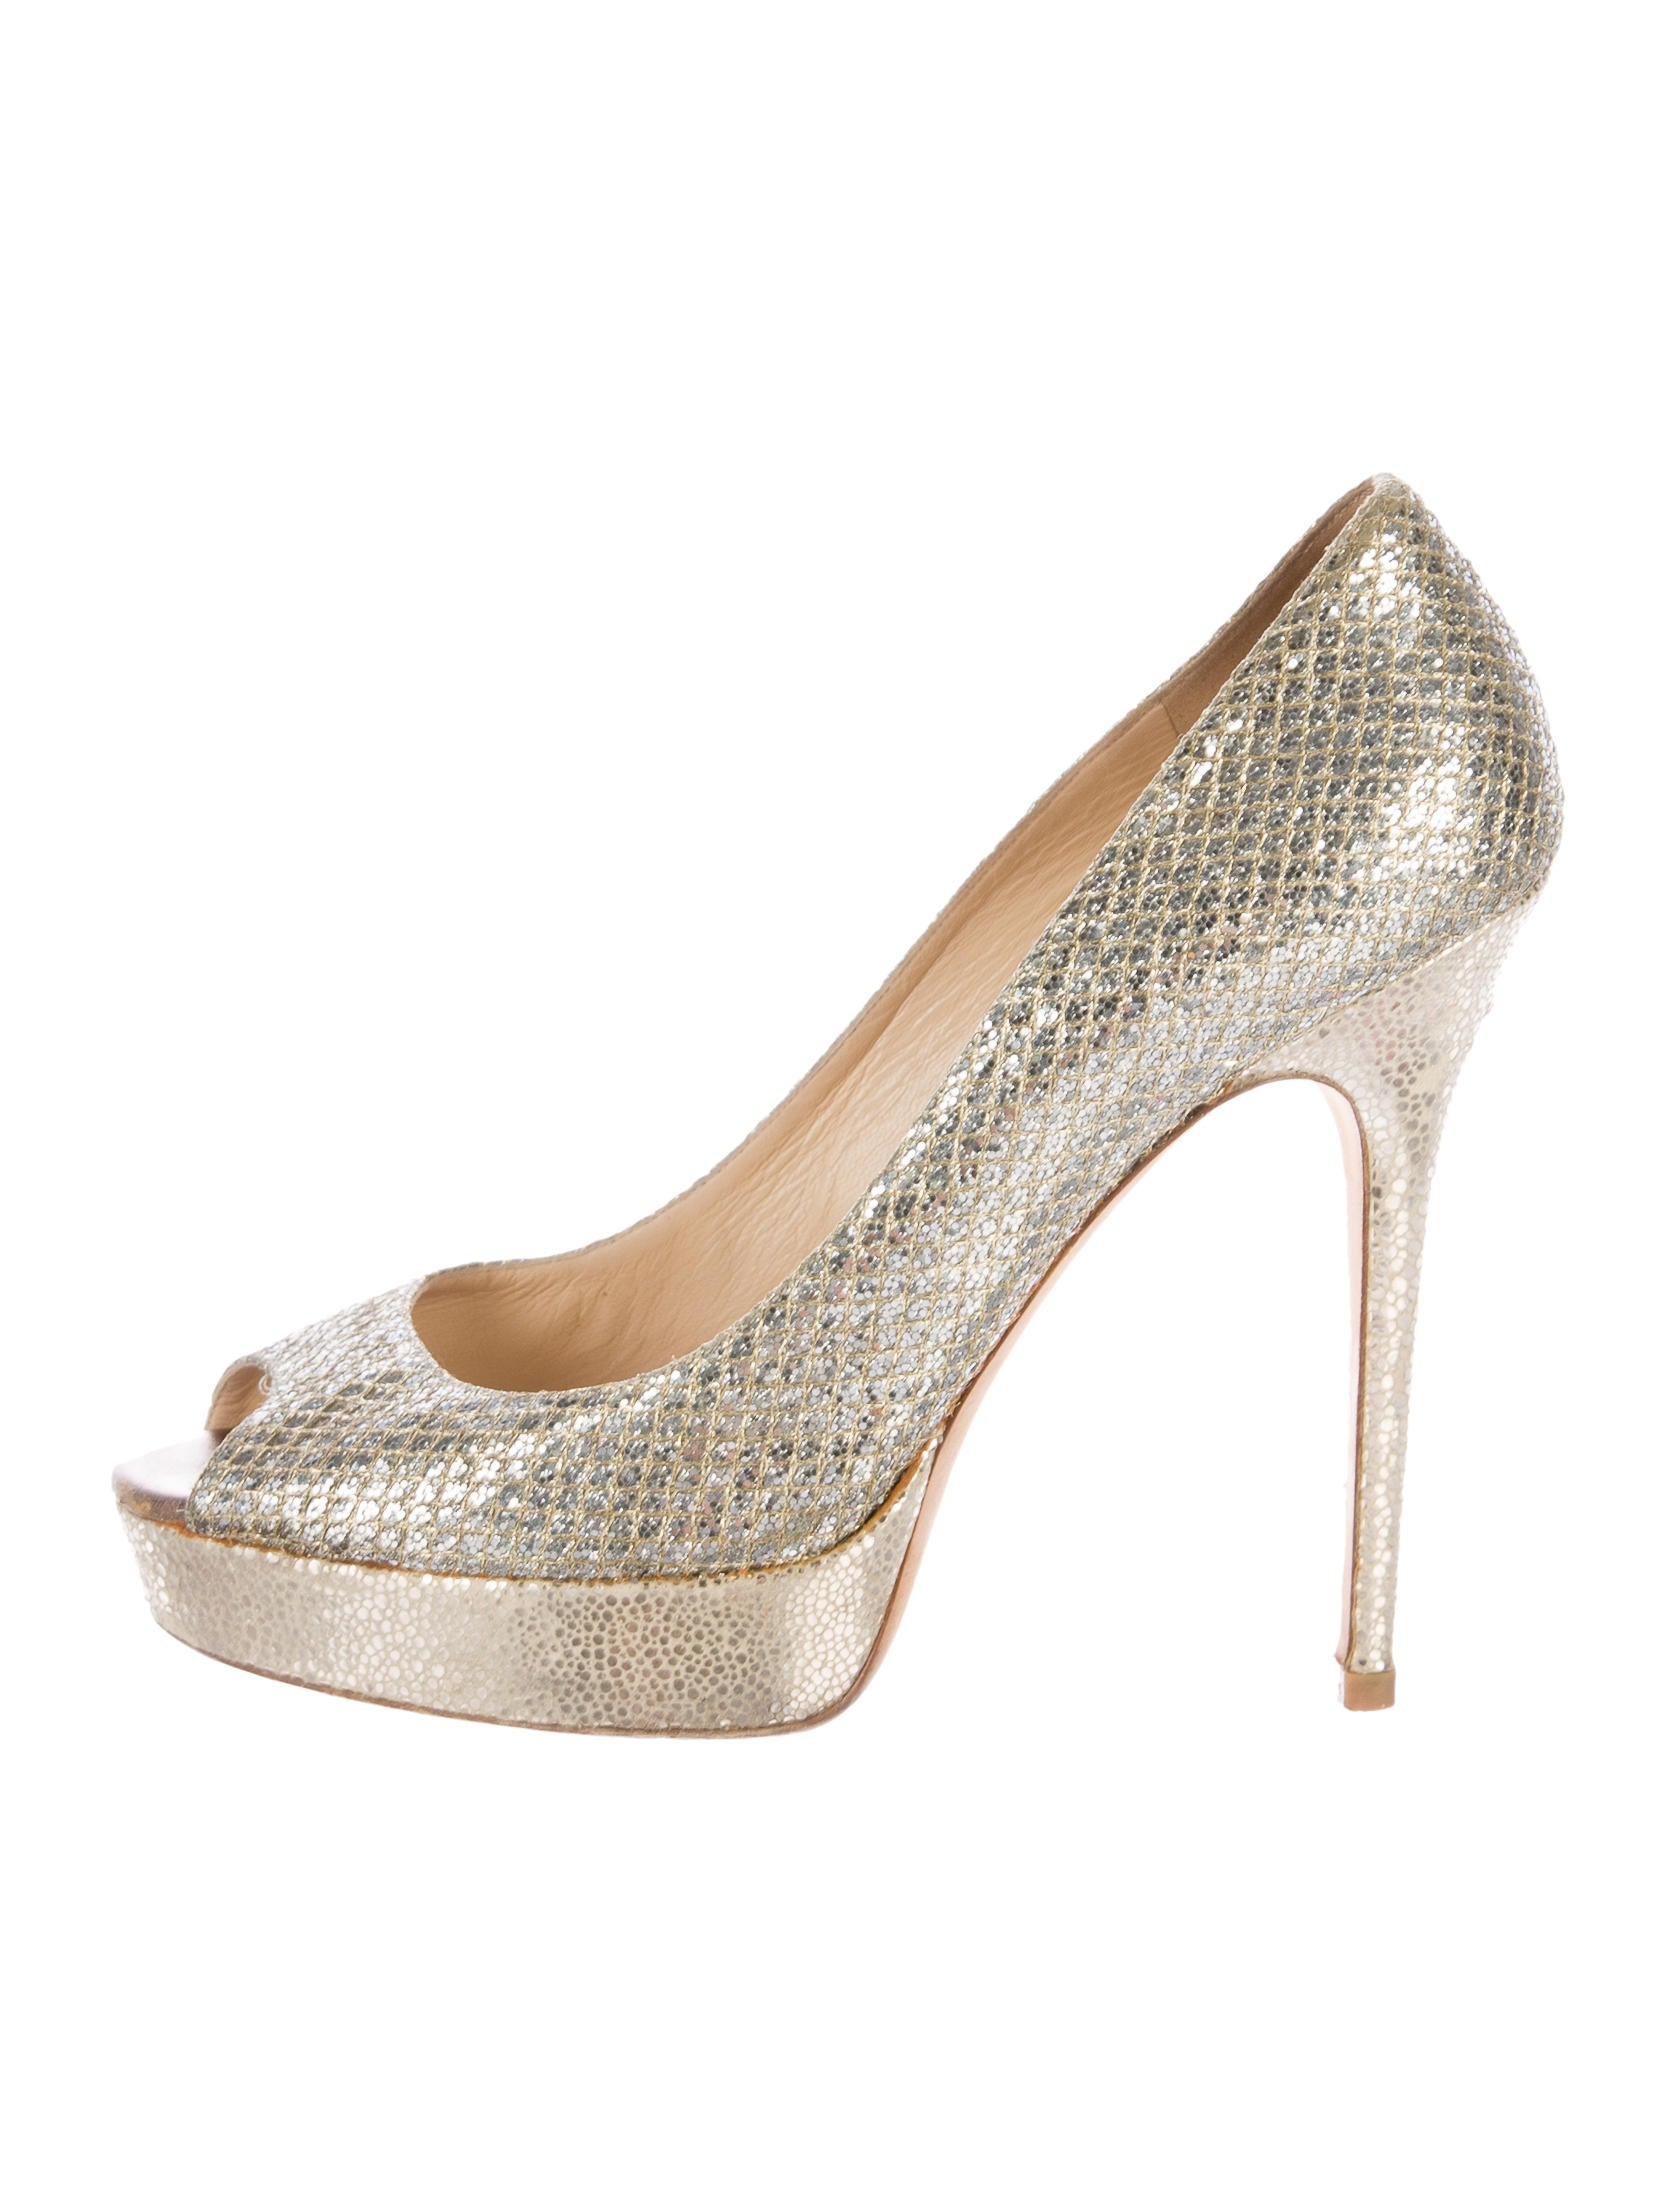 Jimmy Choo Glitter Platform Pumps Shoes Jim62149 The